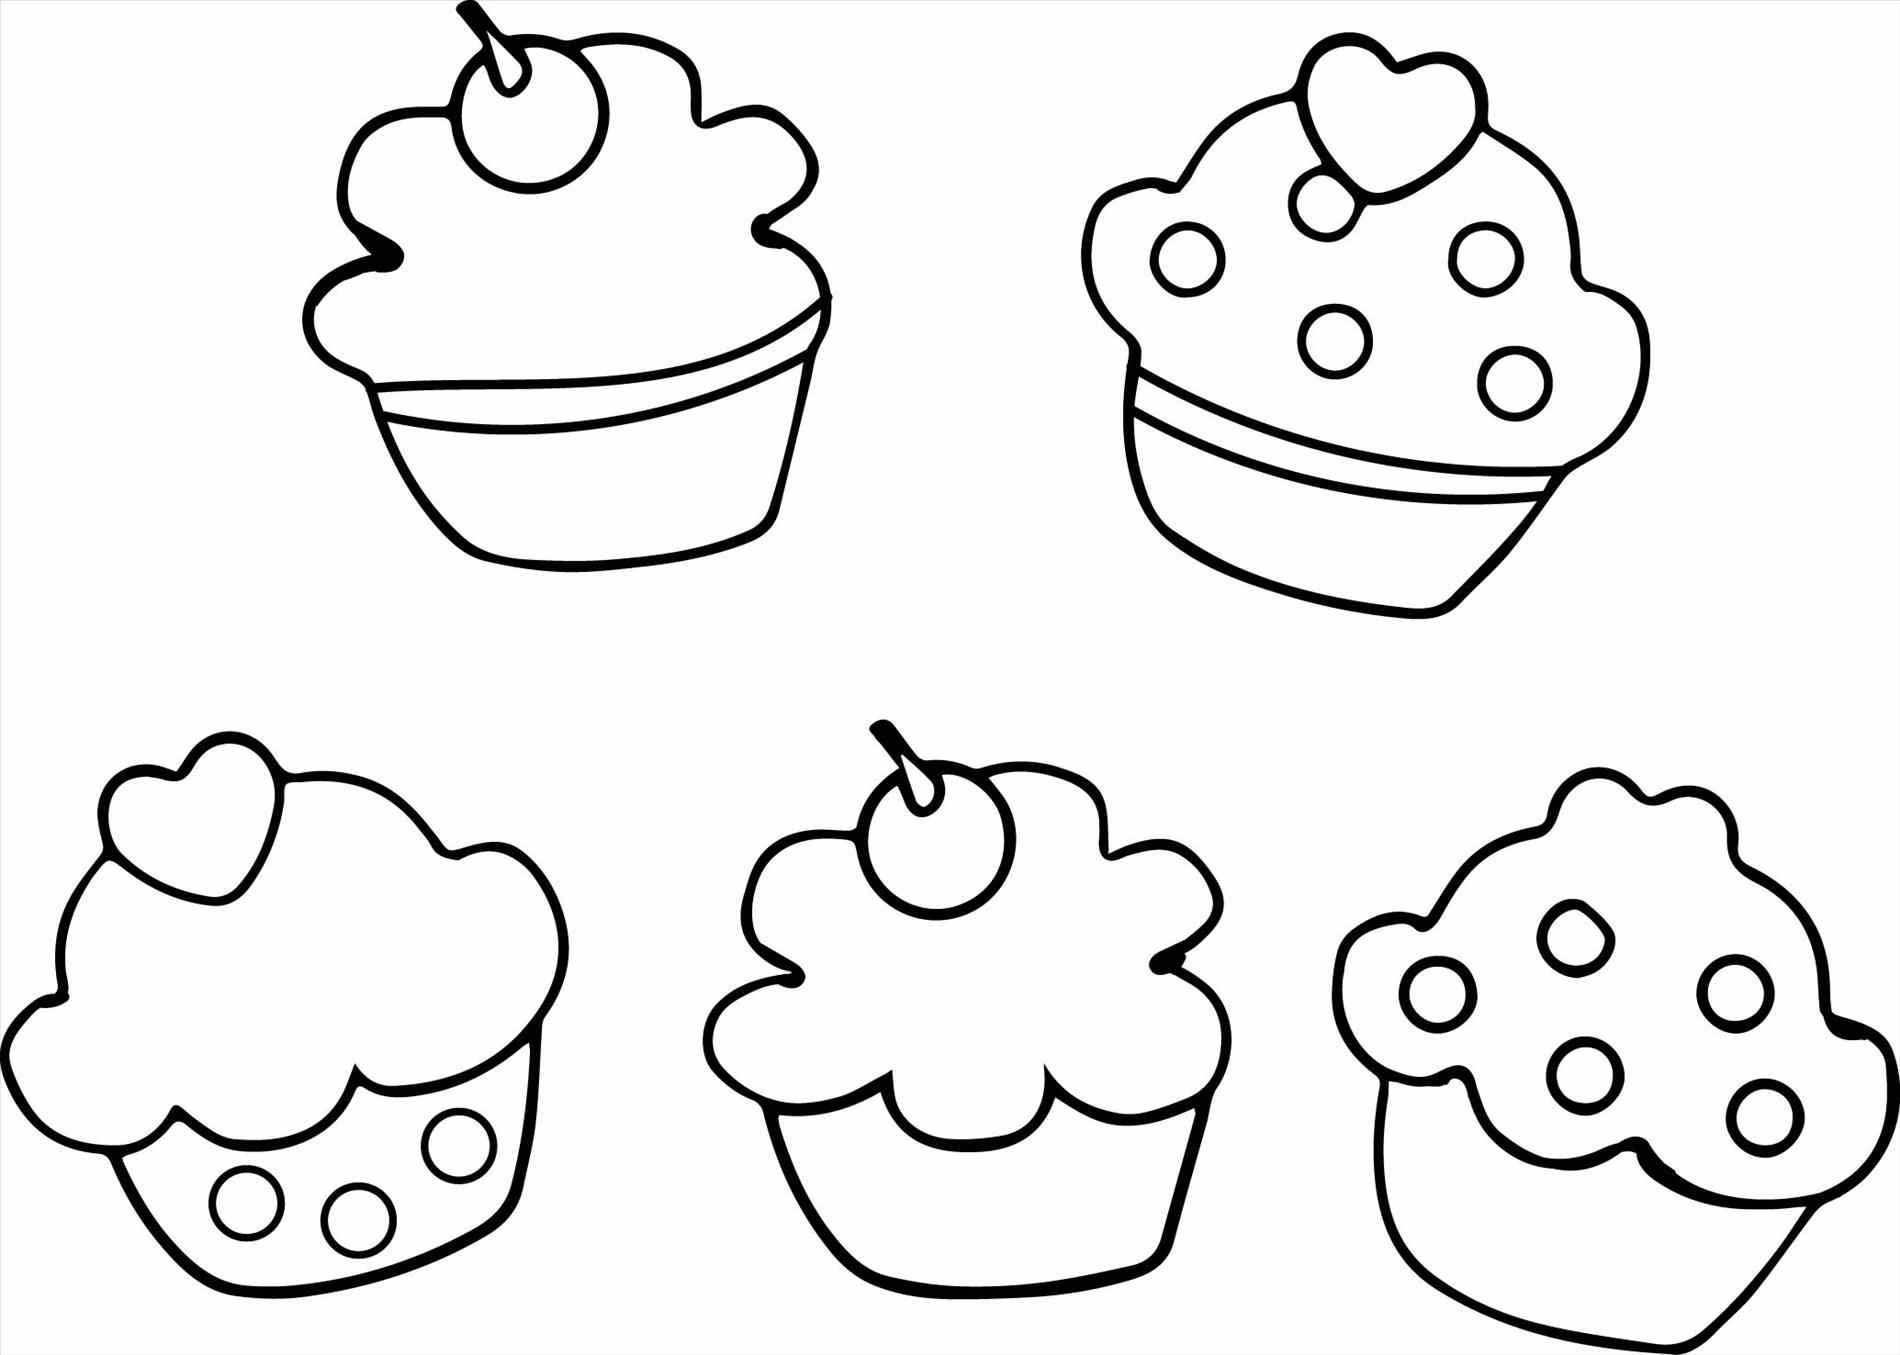 1900x1355 Cupcake Coloring Pages Bestofcoloring Com At Cupcakes